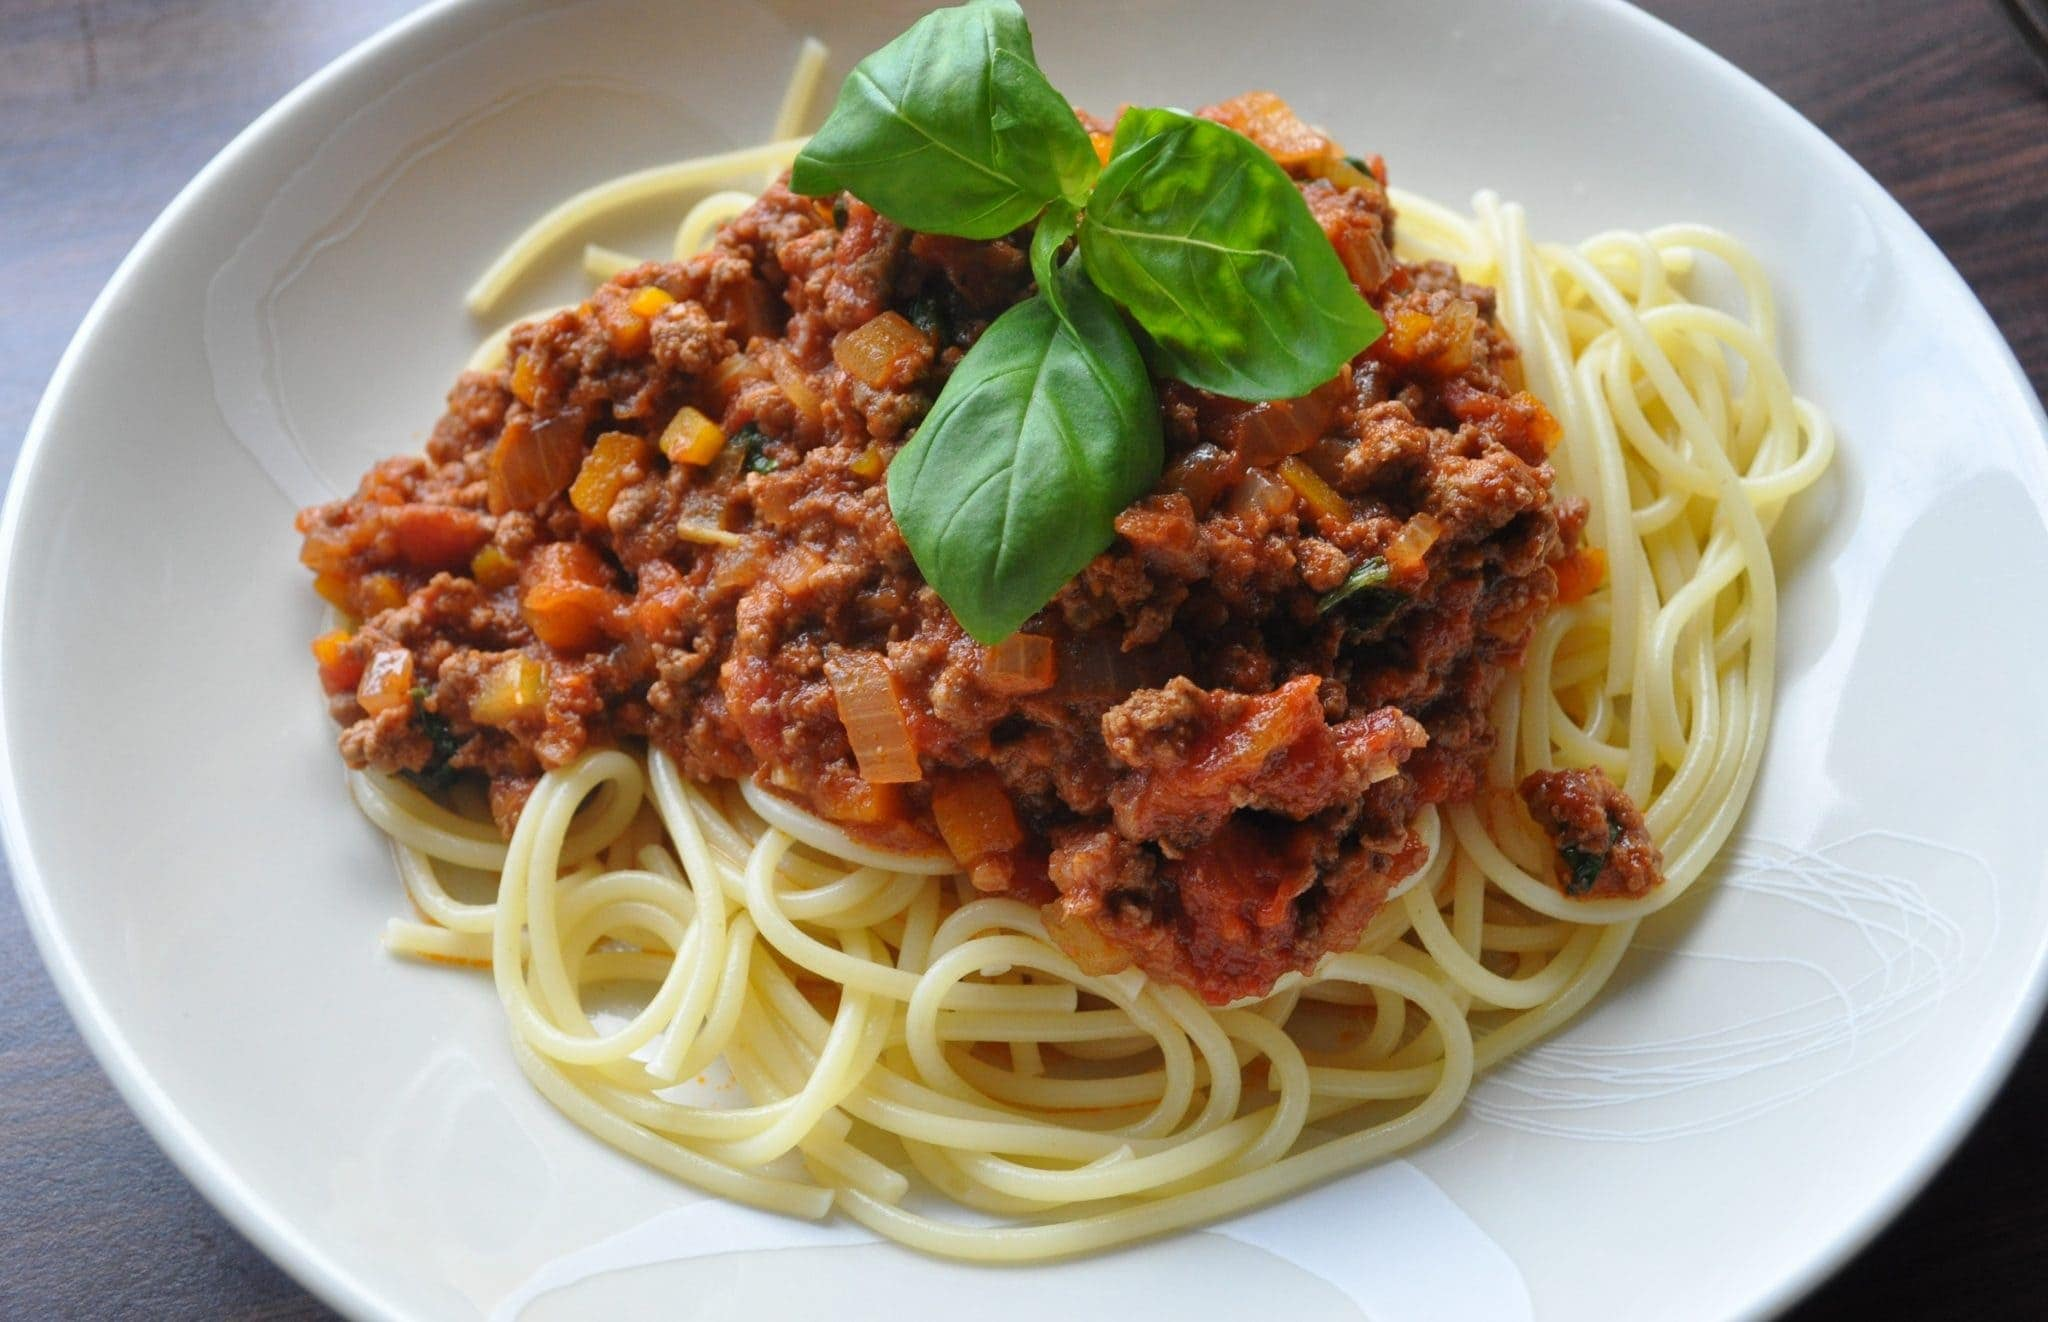 Homemade Italian spaghetti sauce is for the whole family.